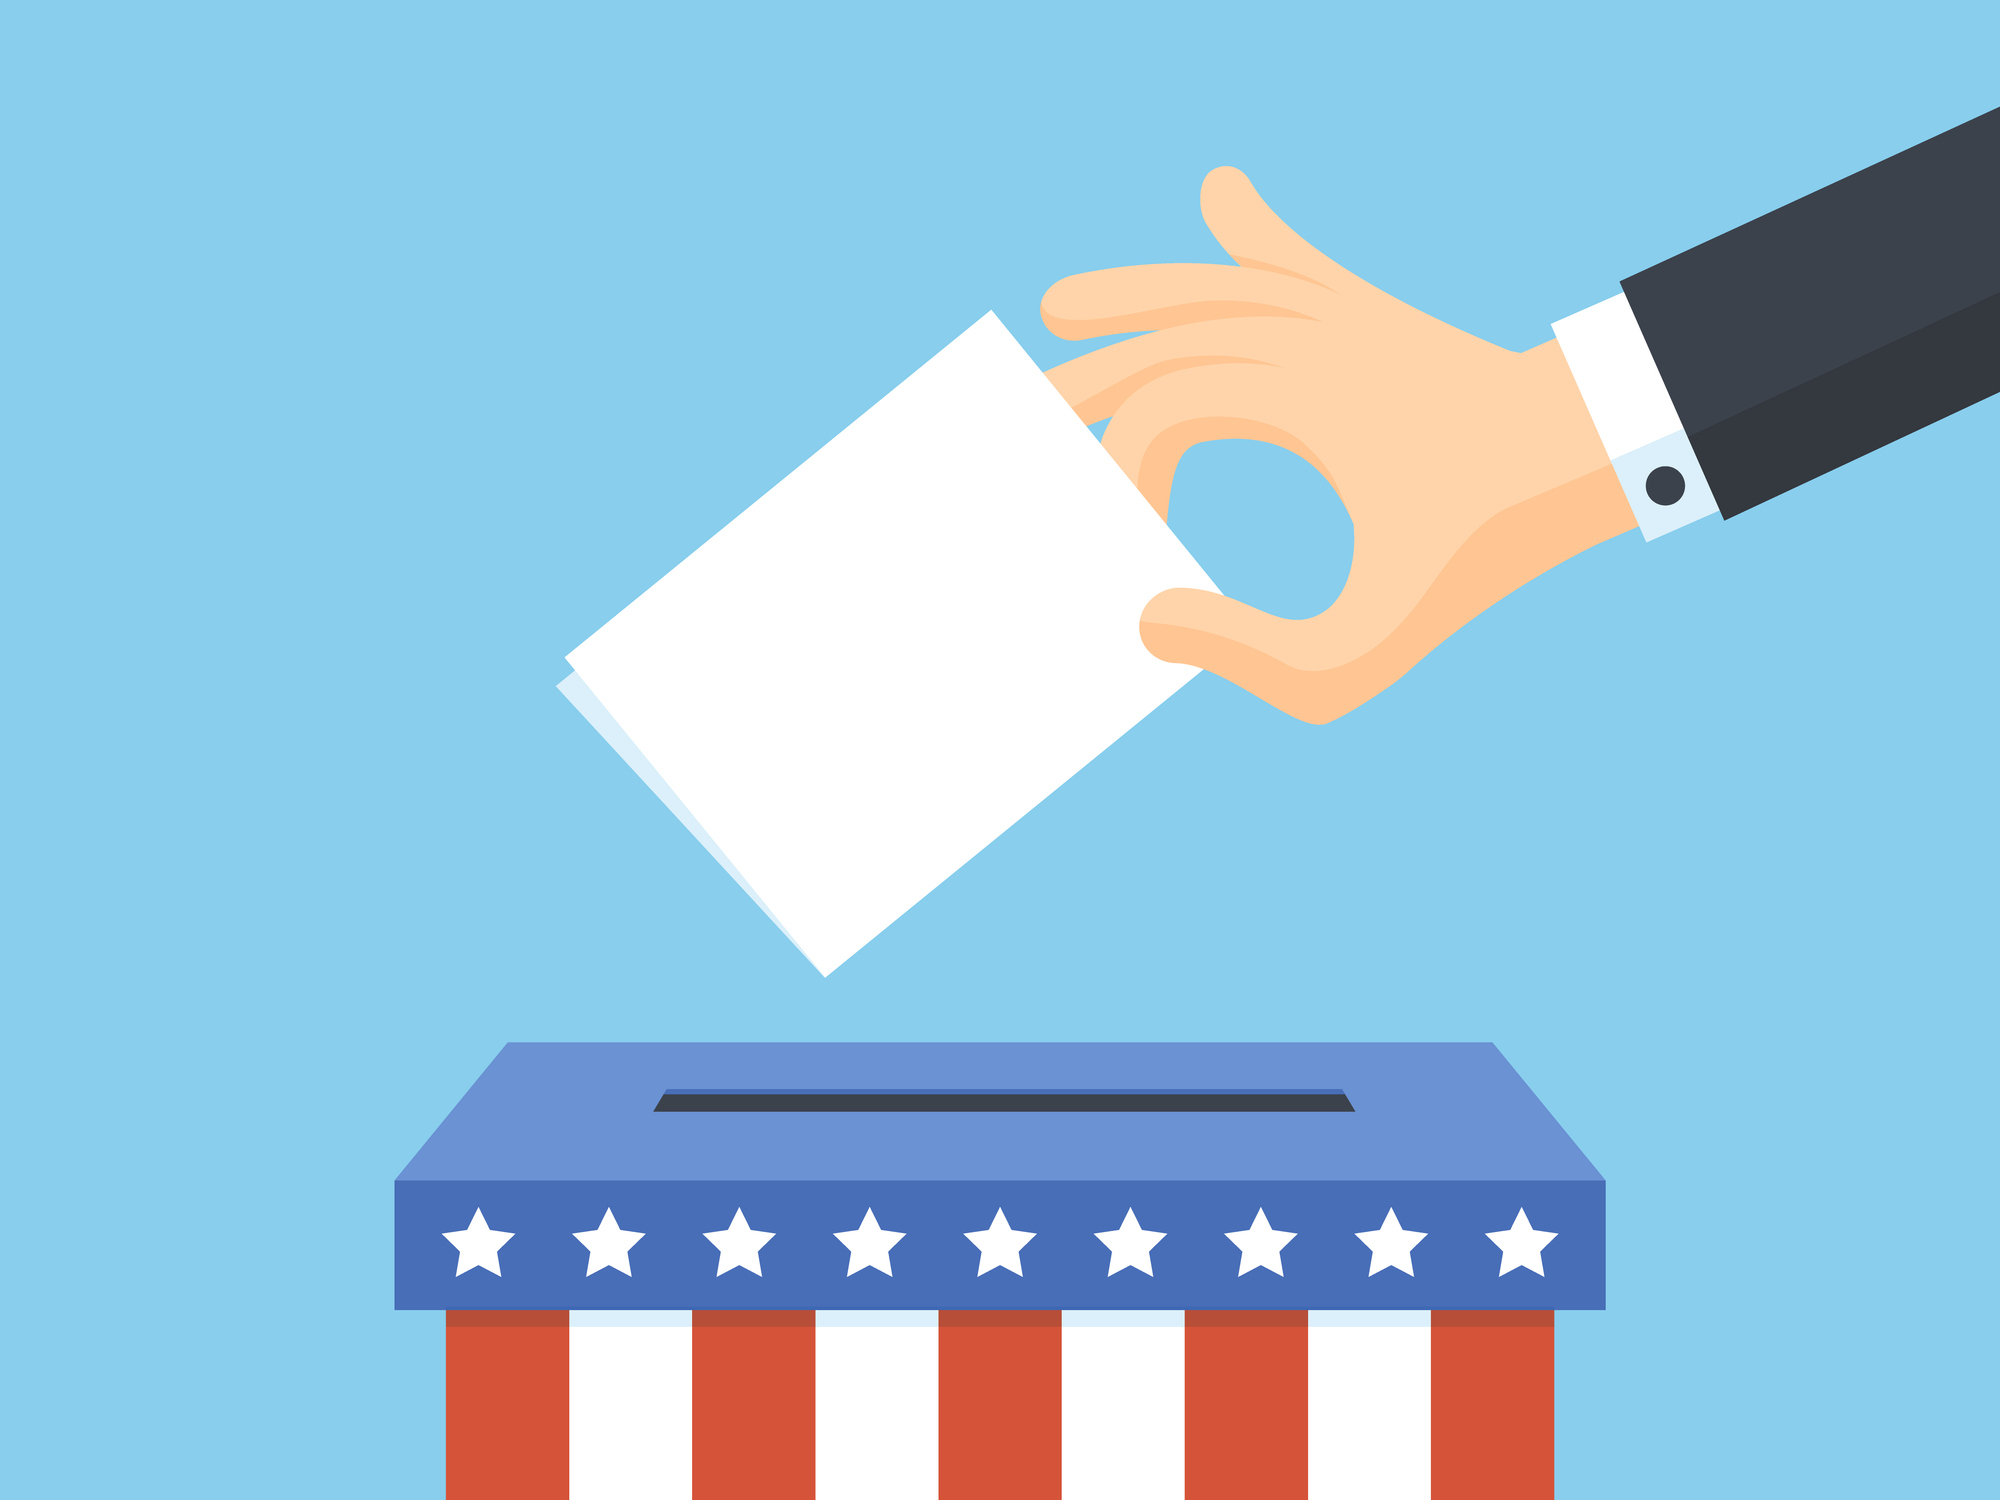 United States of America voting ballot illustration. Image credit: iStock